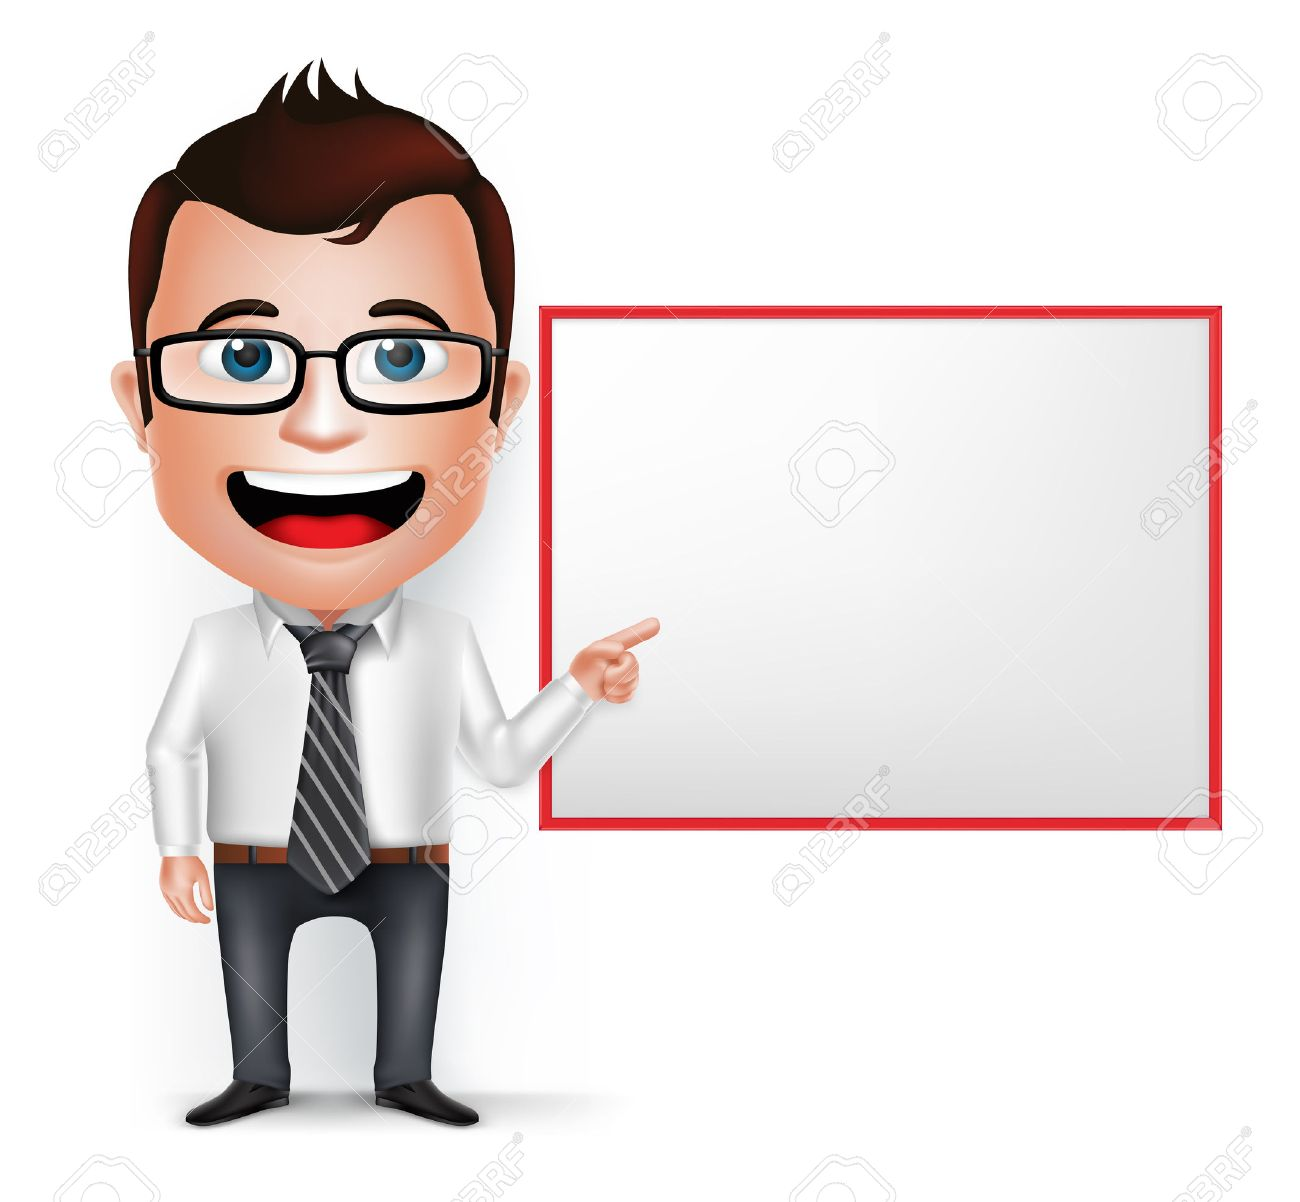 3D Realistic Businessman Cartoon Character Teaching or Showing Blank White Board Isolated in White Background. Vector Illustration. - 44166055